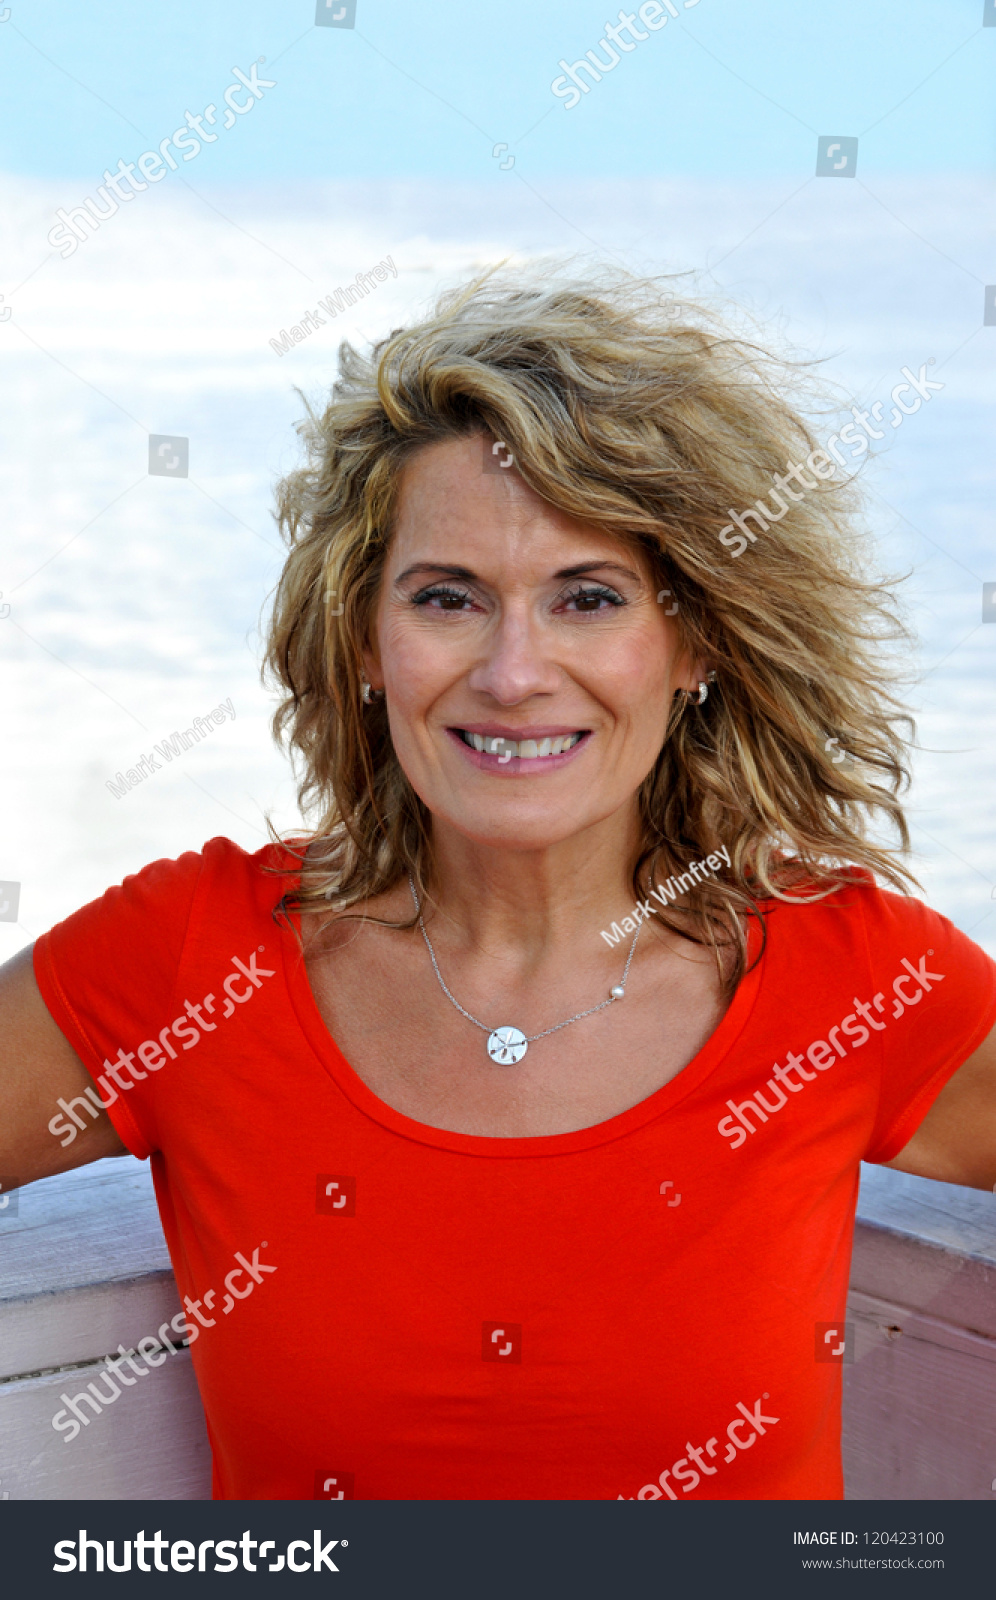 stock-photo-attractive-middle-age-woman-